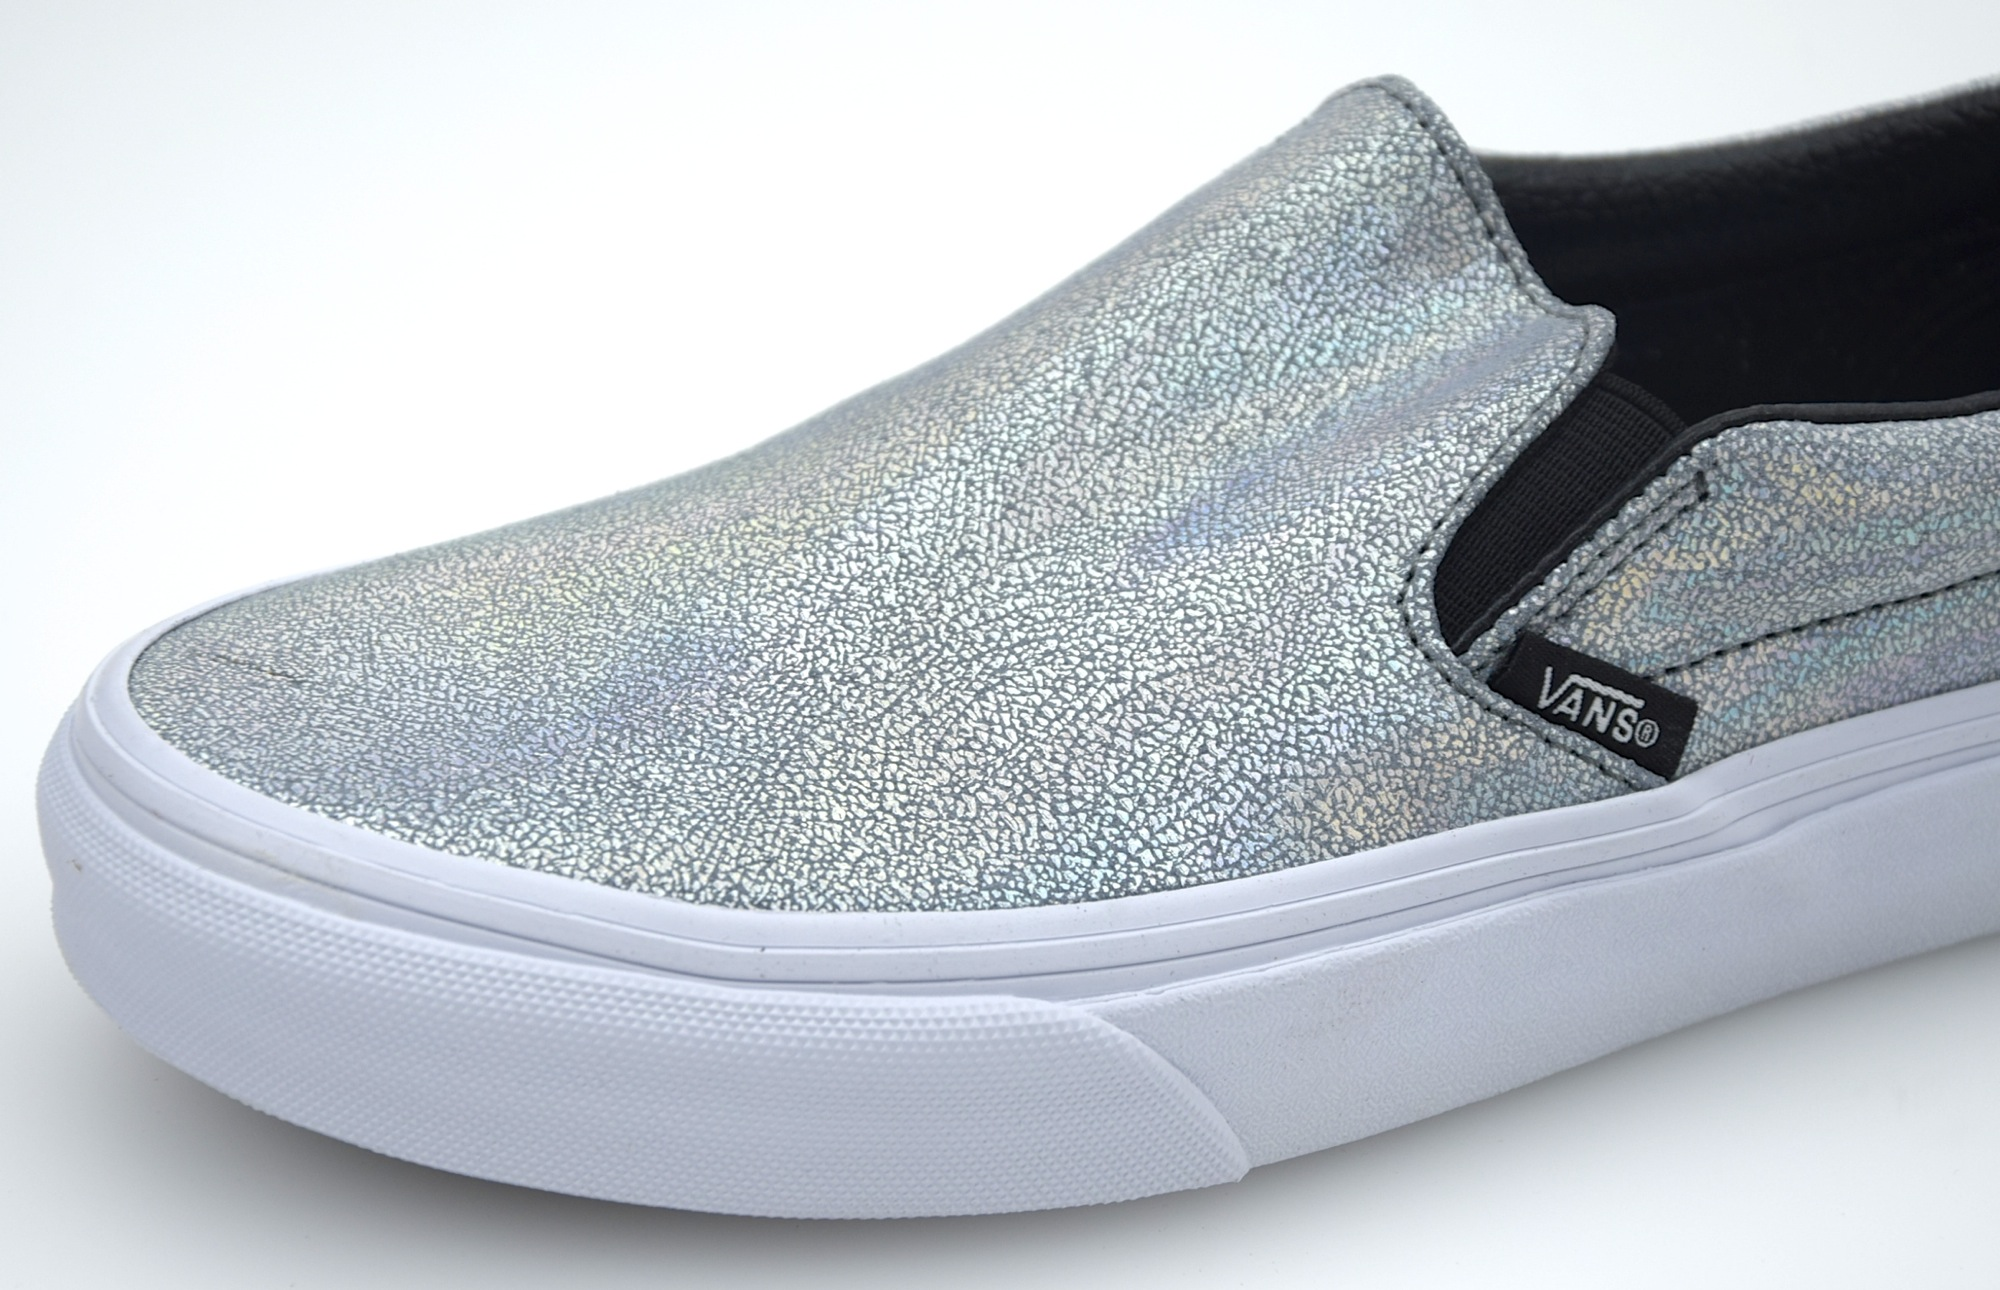 36ffb1a3815526 VANS WOMAN SNEAKER SLIP ON SHOES IRIDESCENT CODE CLASSIC SLIP-ON 18DGZC